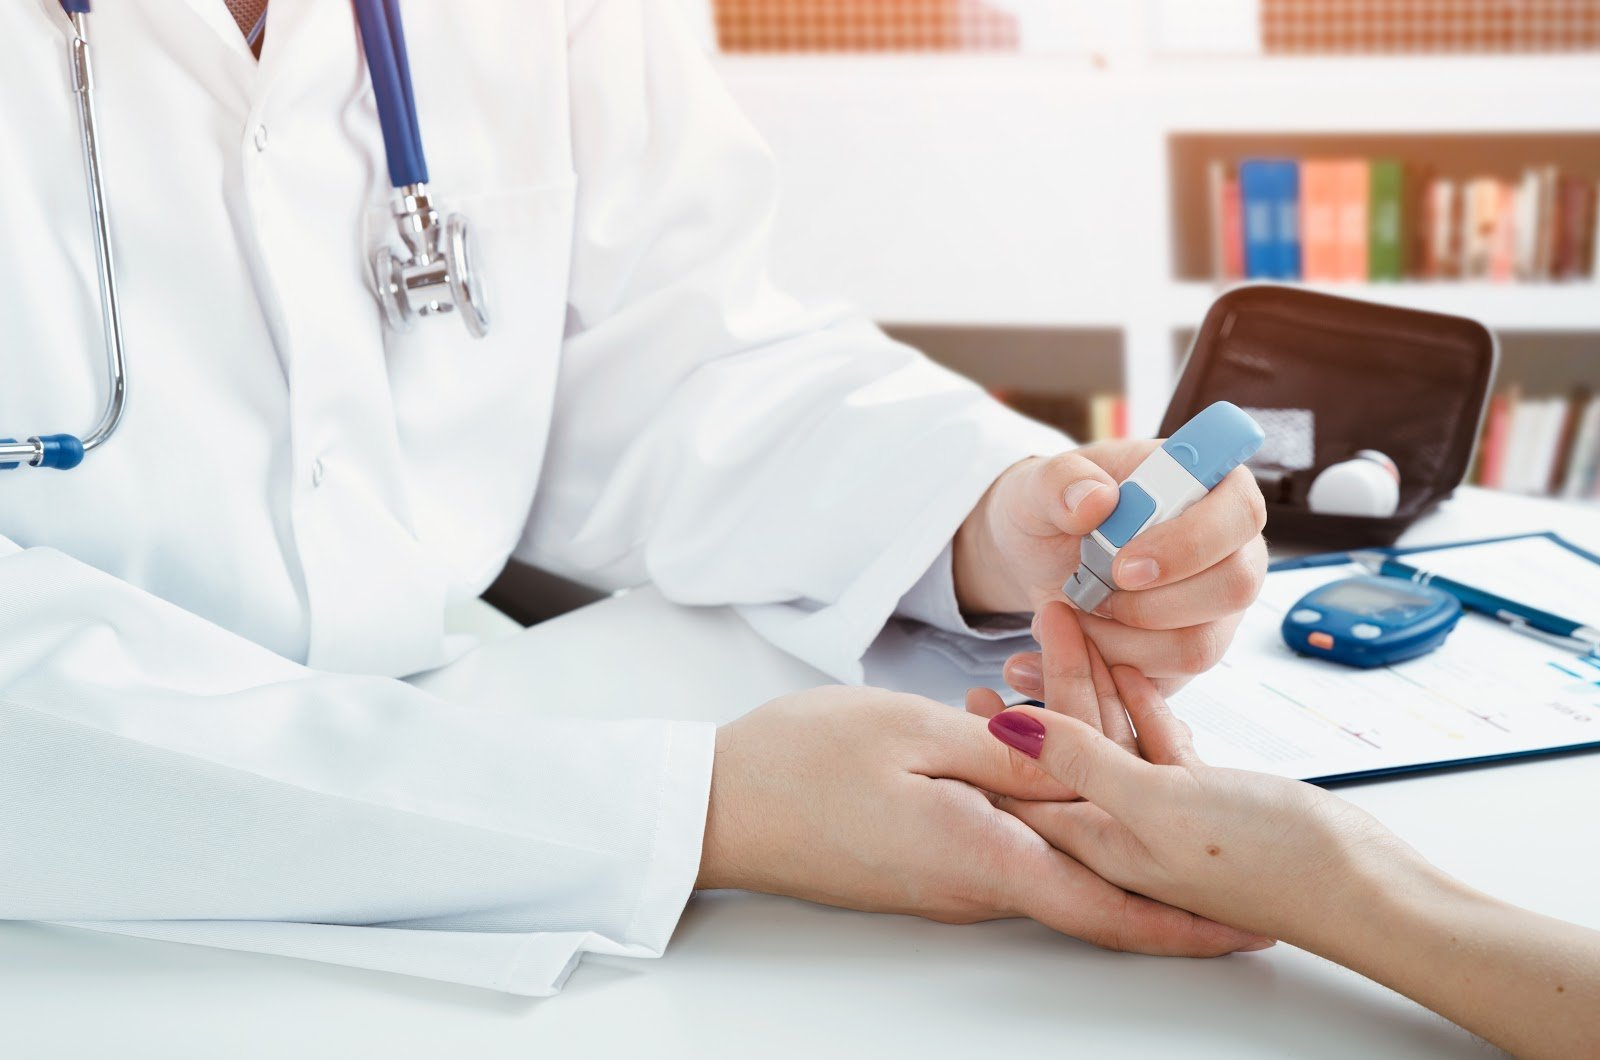 doctor-administering-test-to-patient-with-diabetes